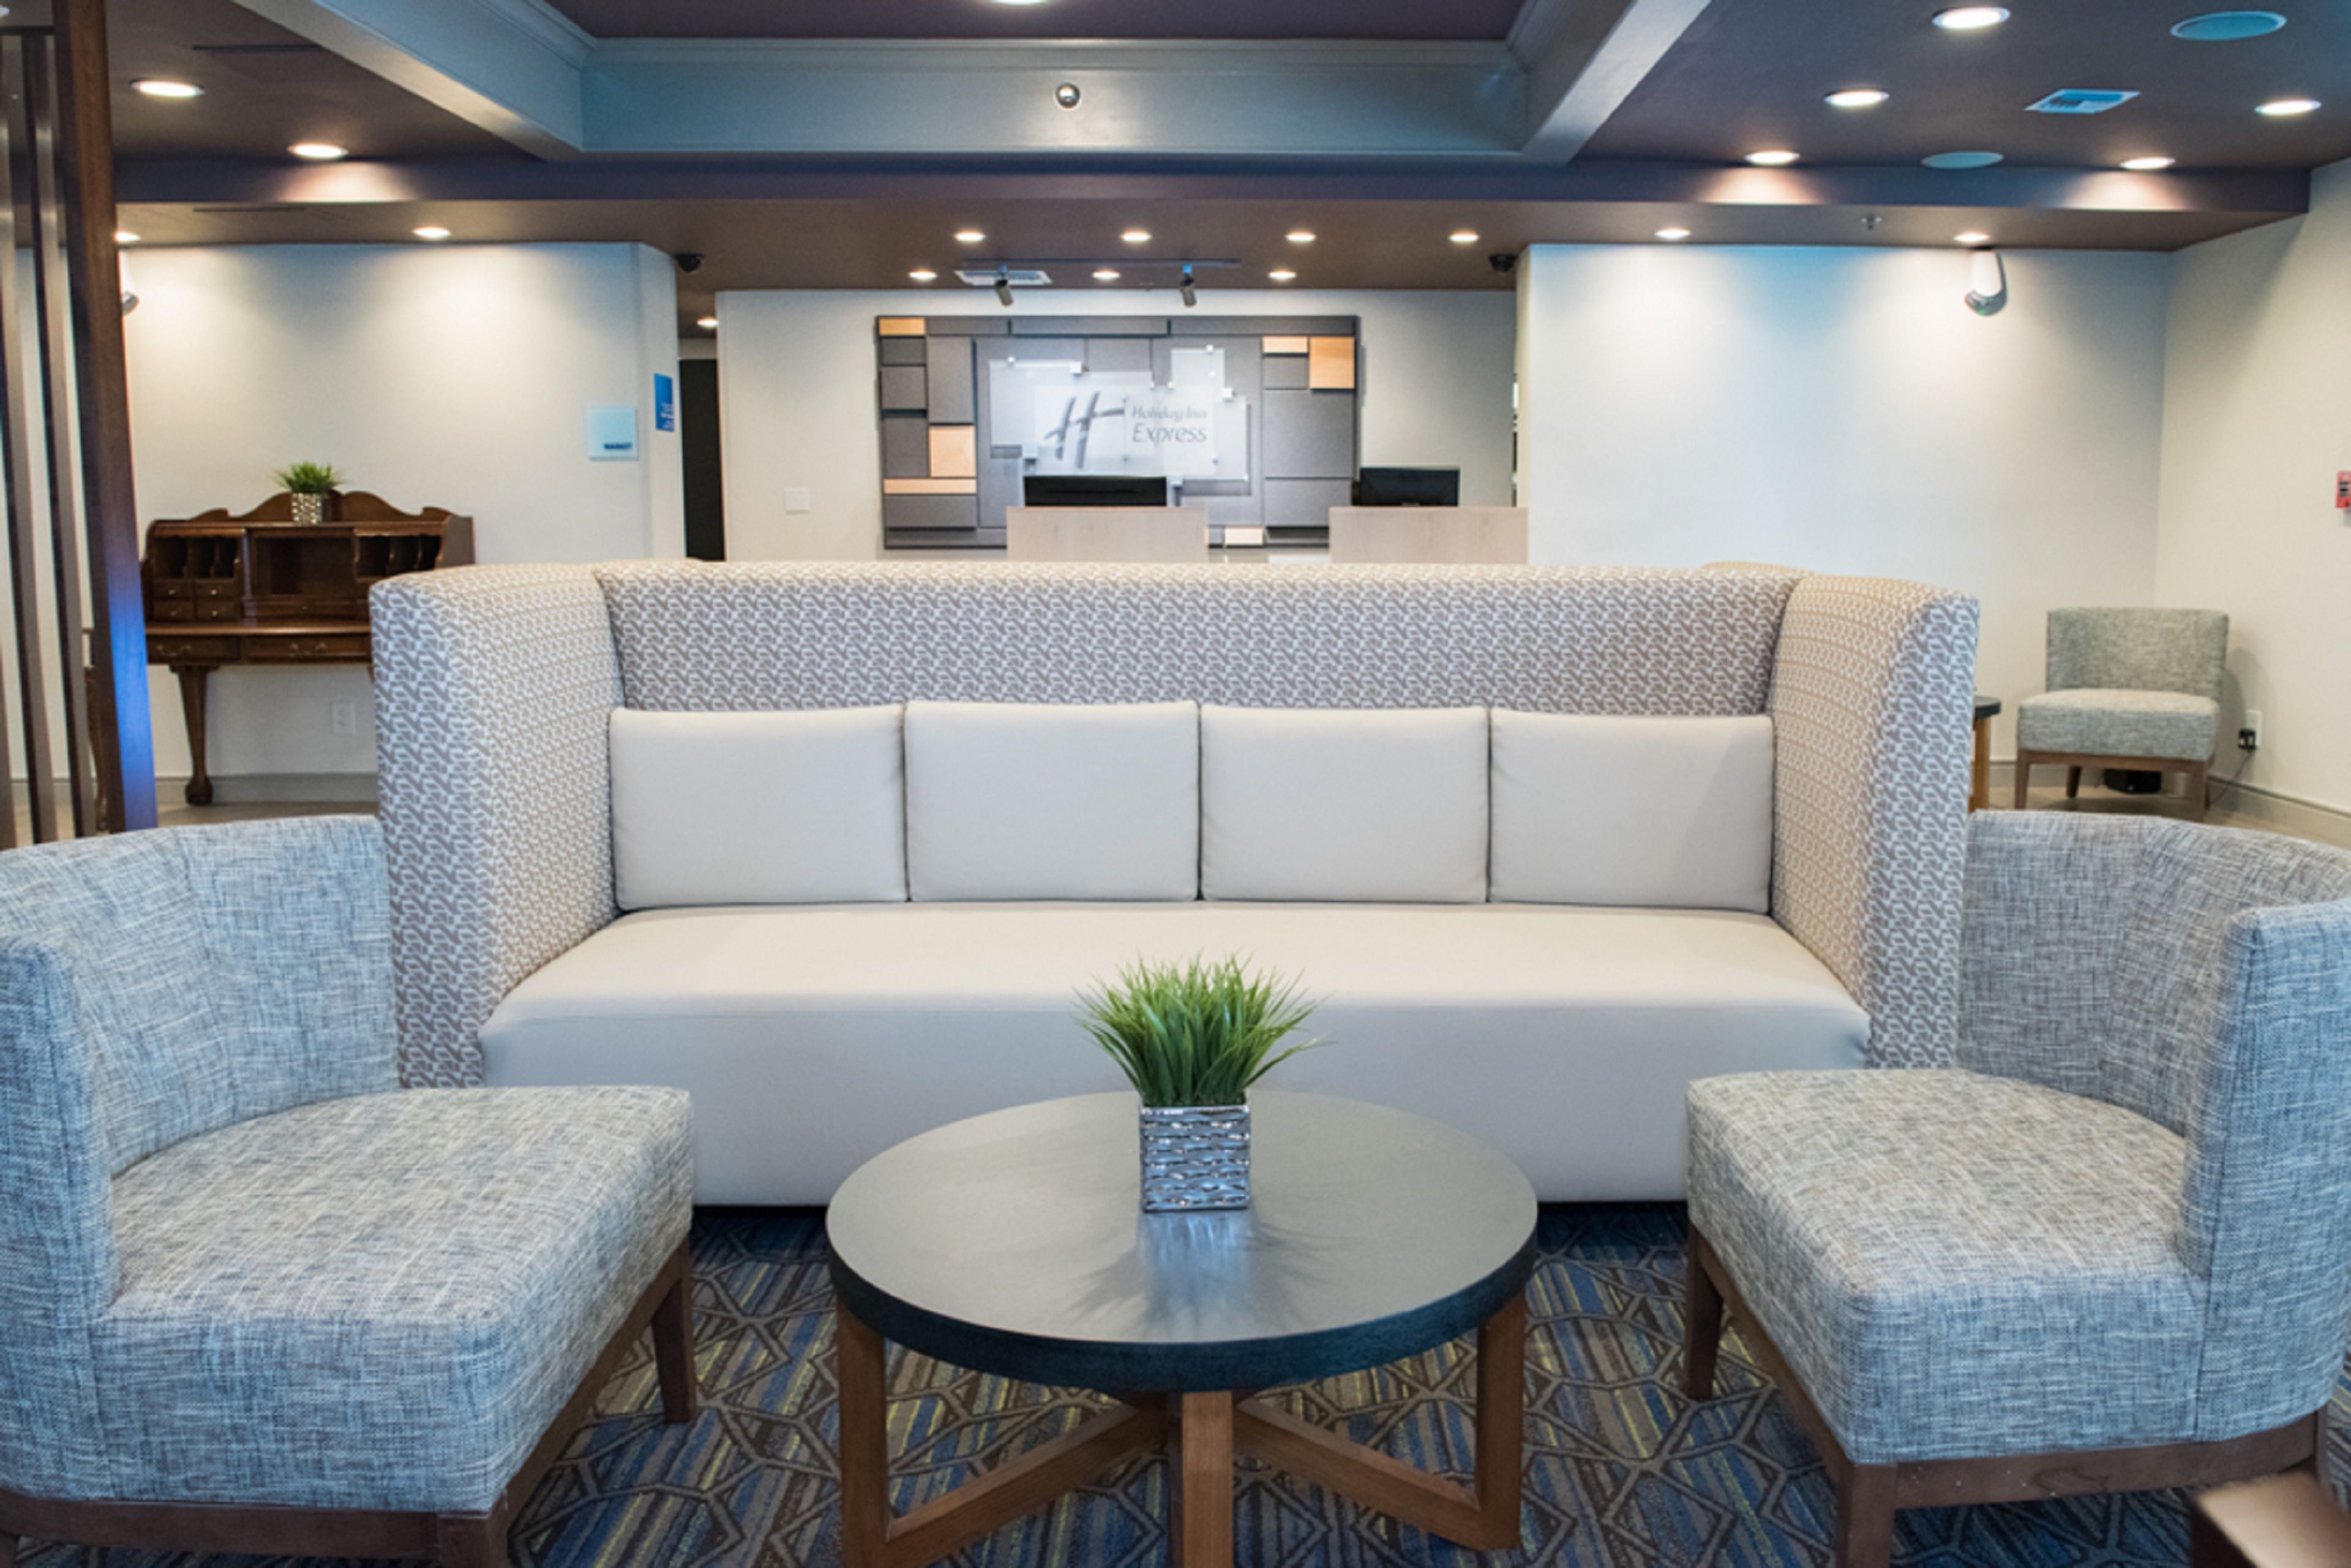 Holiday Inn Express Pascagoula-Moss Point image 6